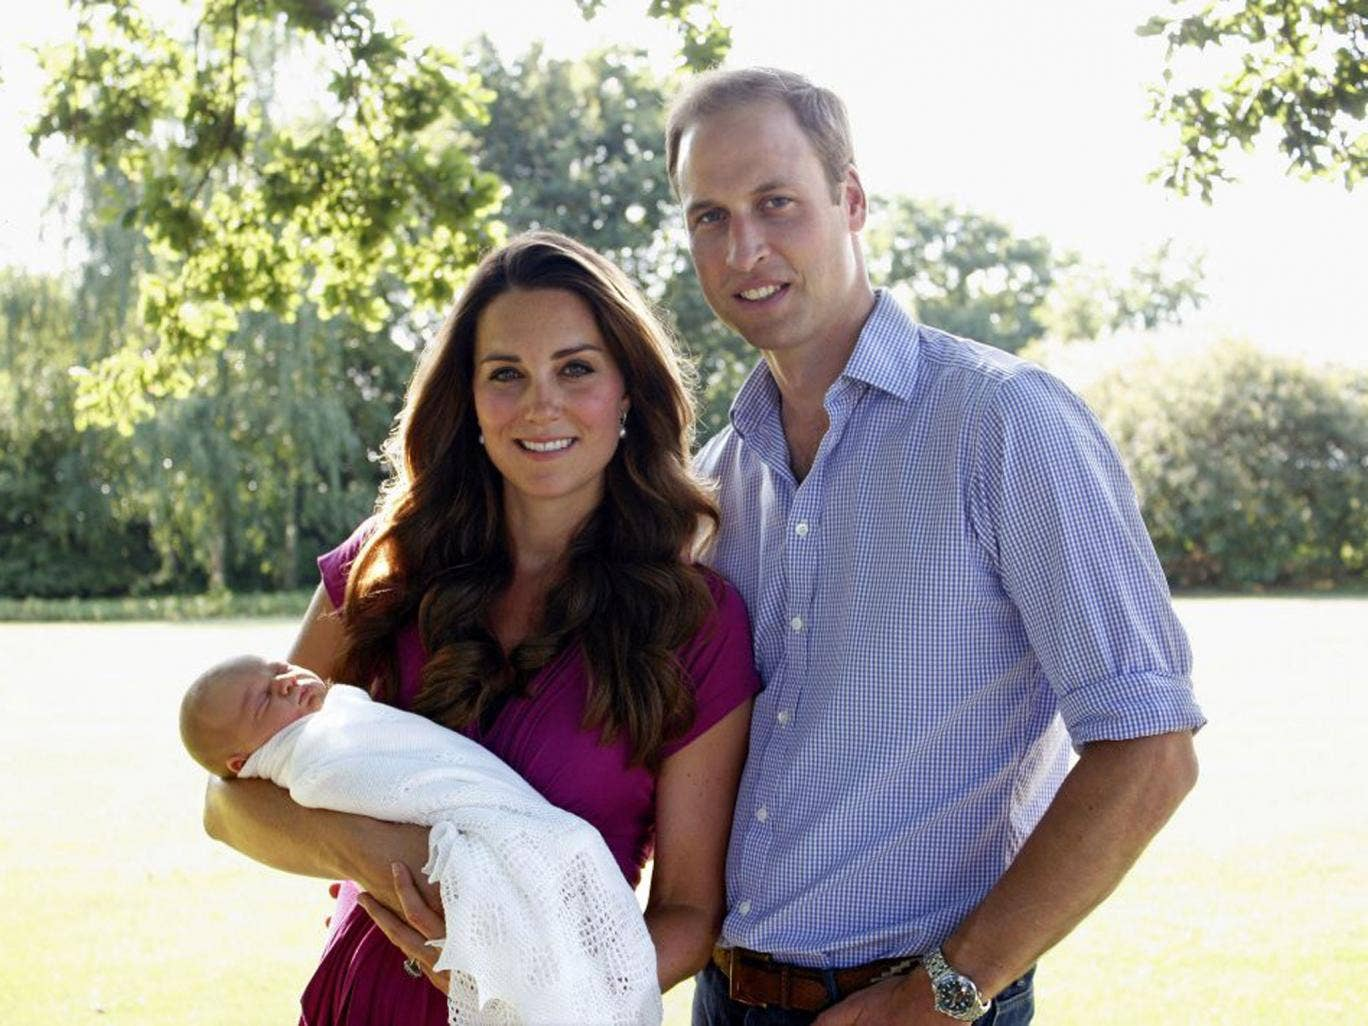 The Green Party would take away Prince William's right to be king.